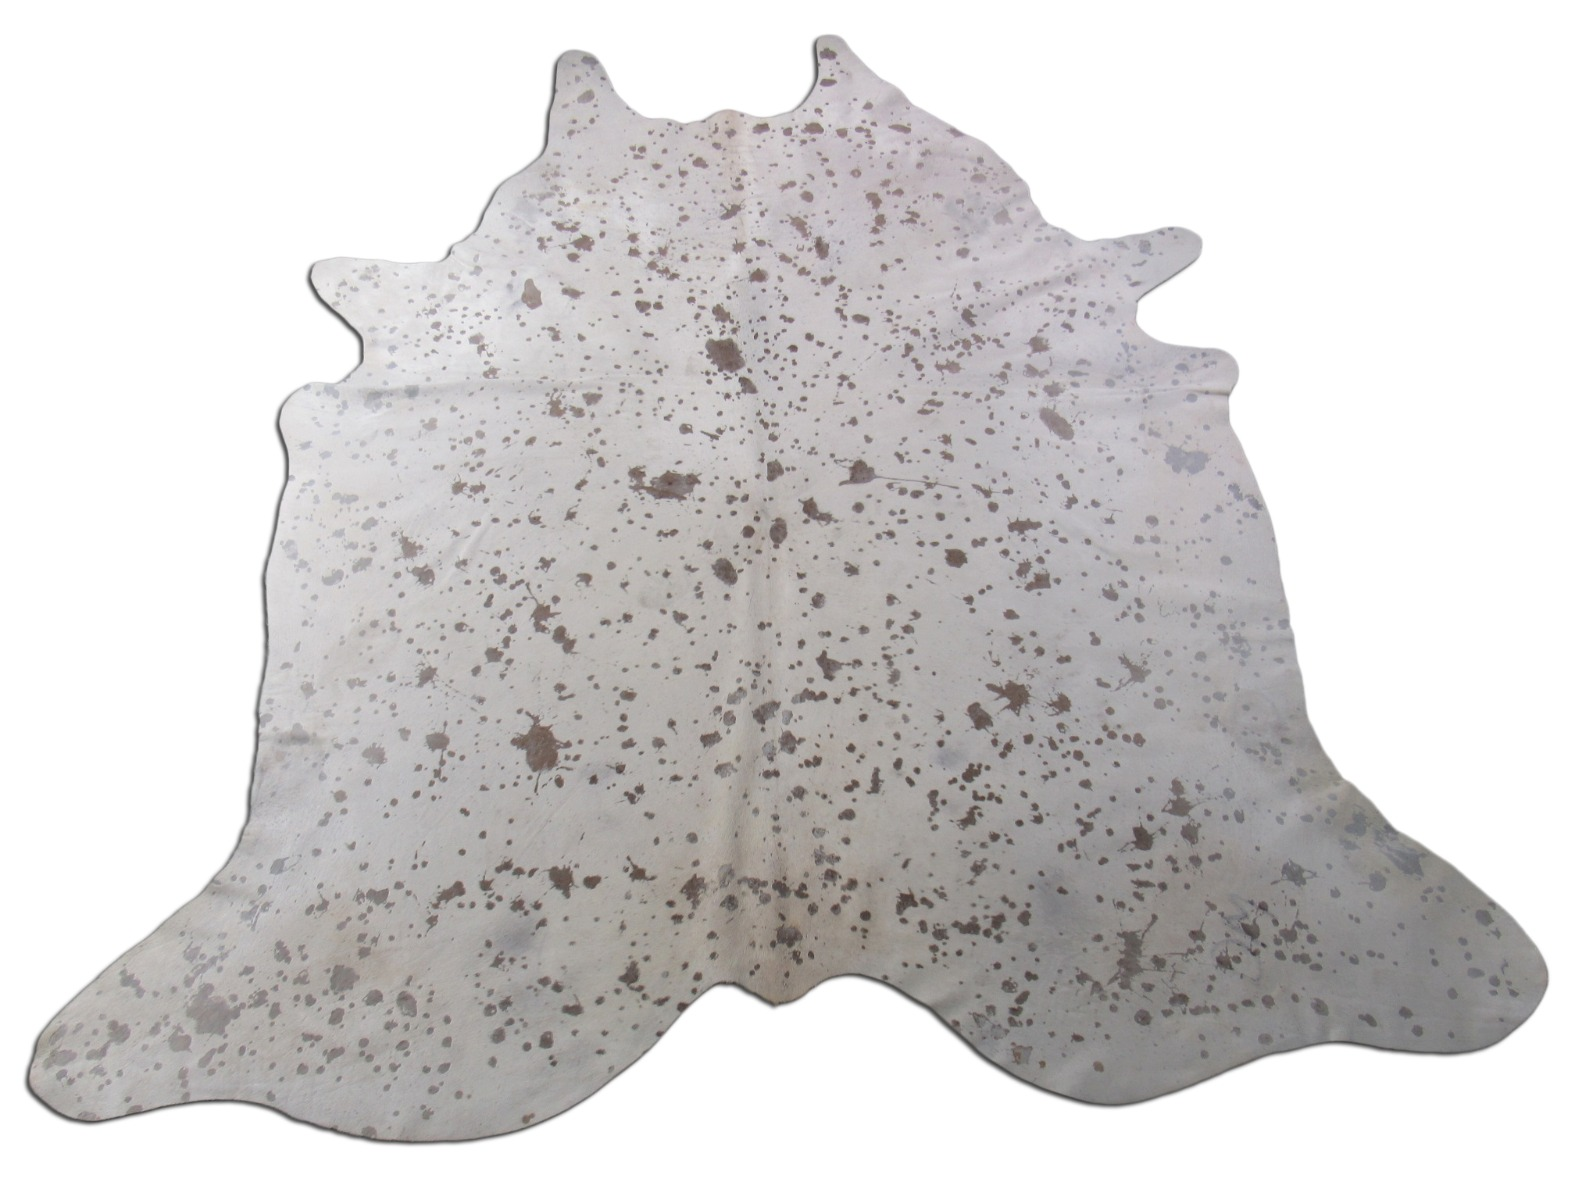 A-1439 Acid Washed Cowhide Rug Size: 8' X 7'